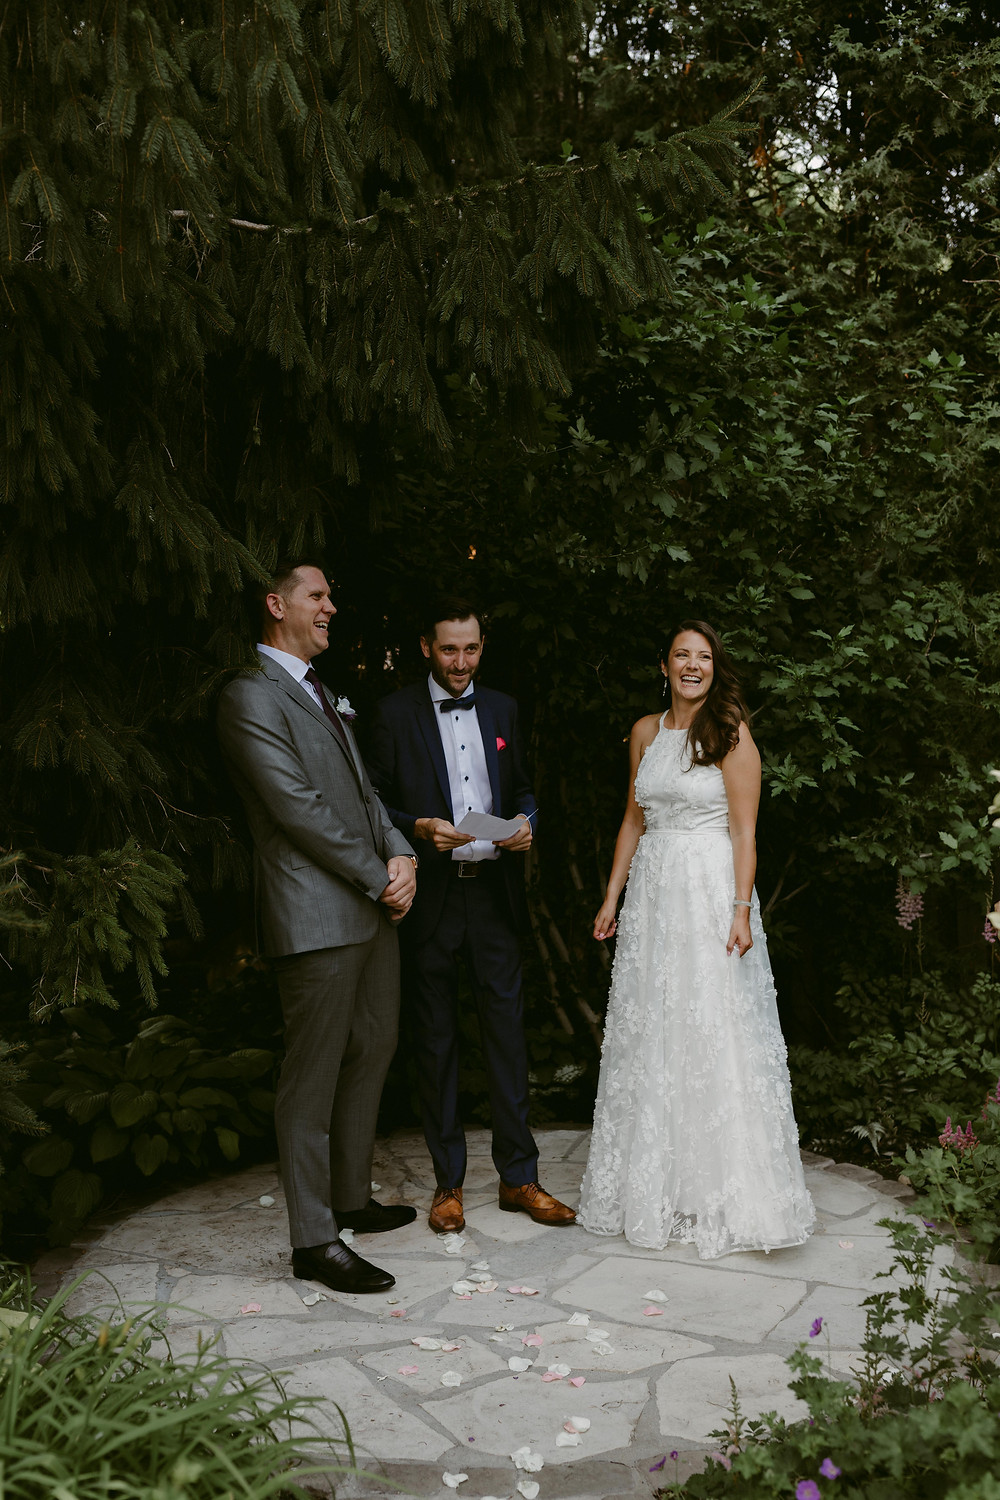 Backyard Wedding, Toronto Wedding, Intimate Wedding Photographer,